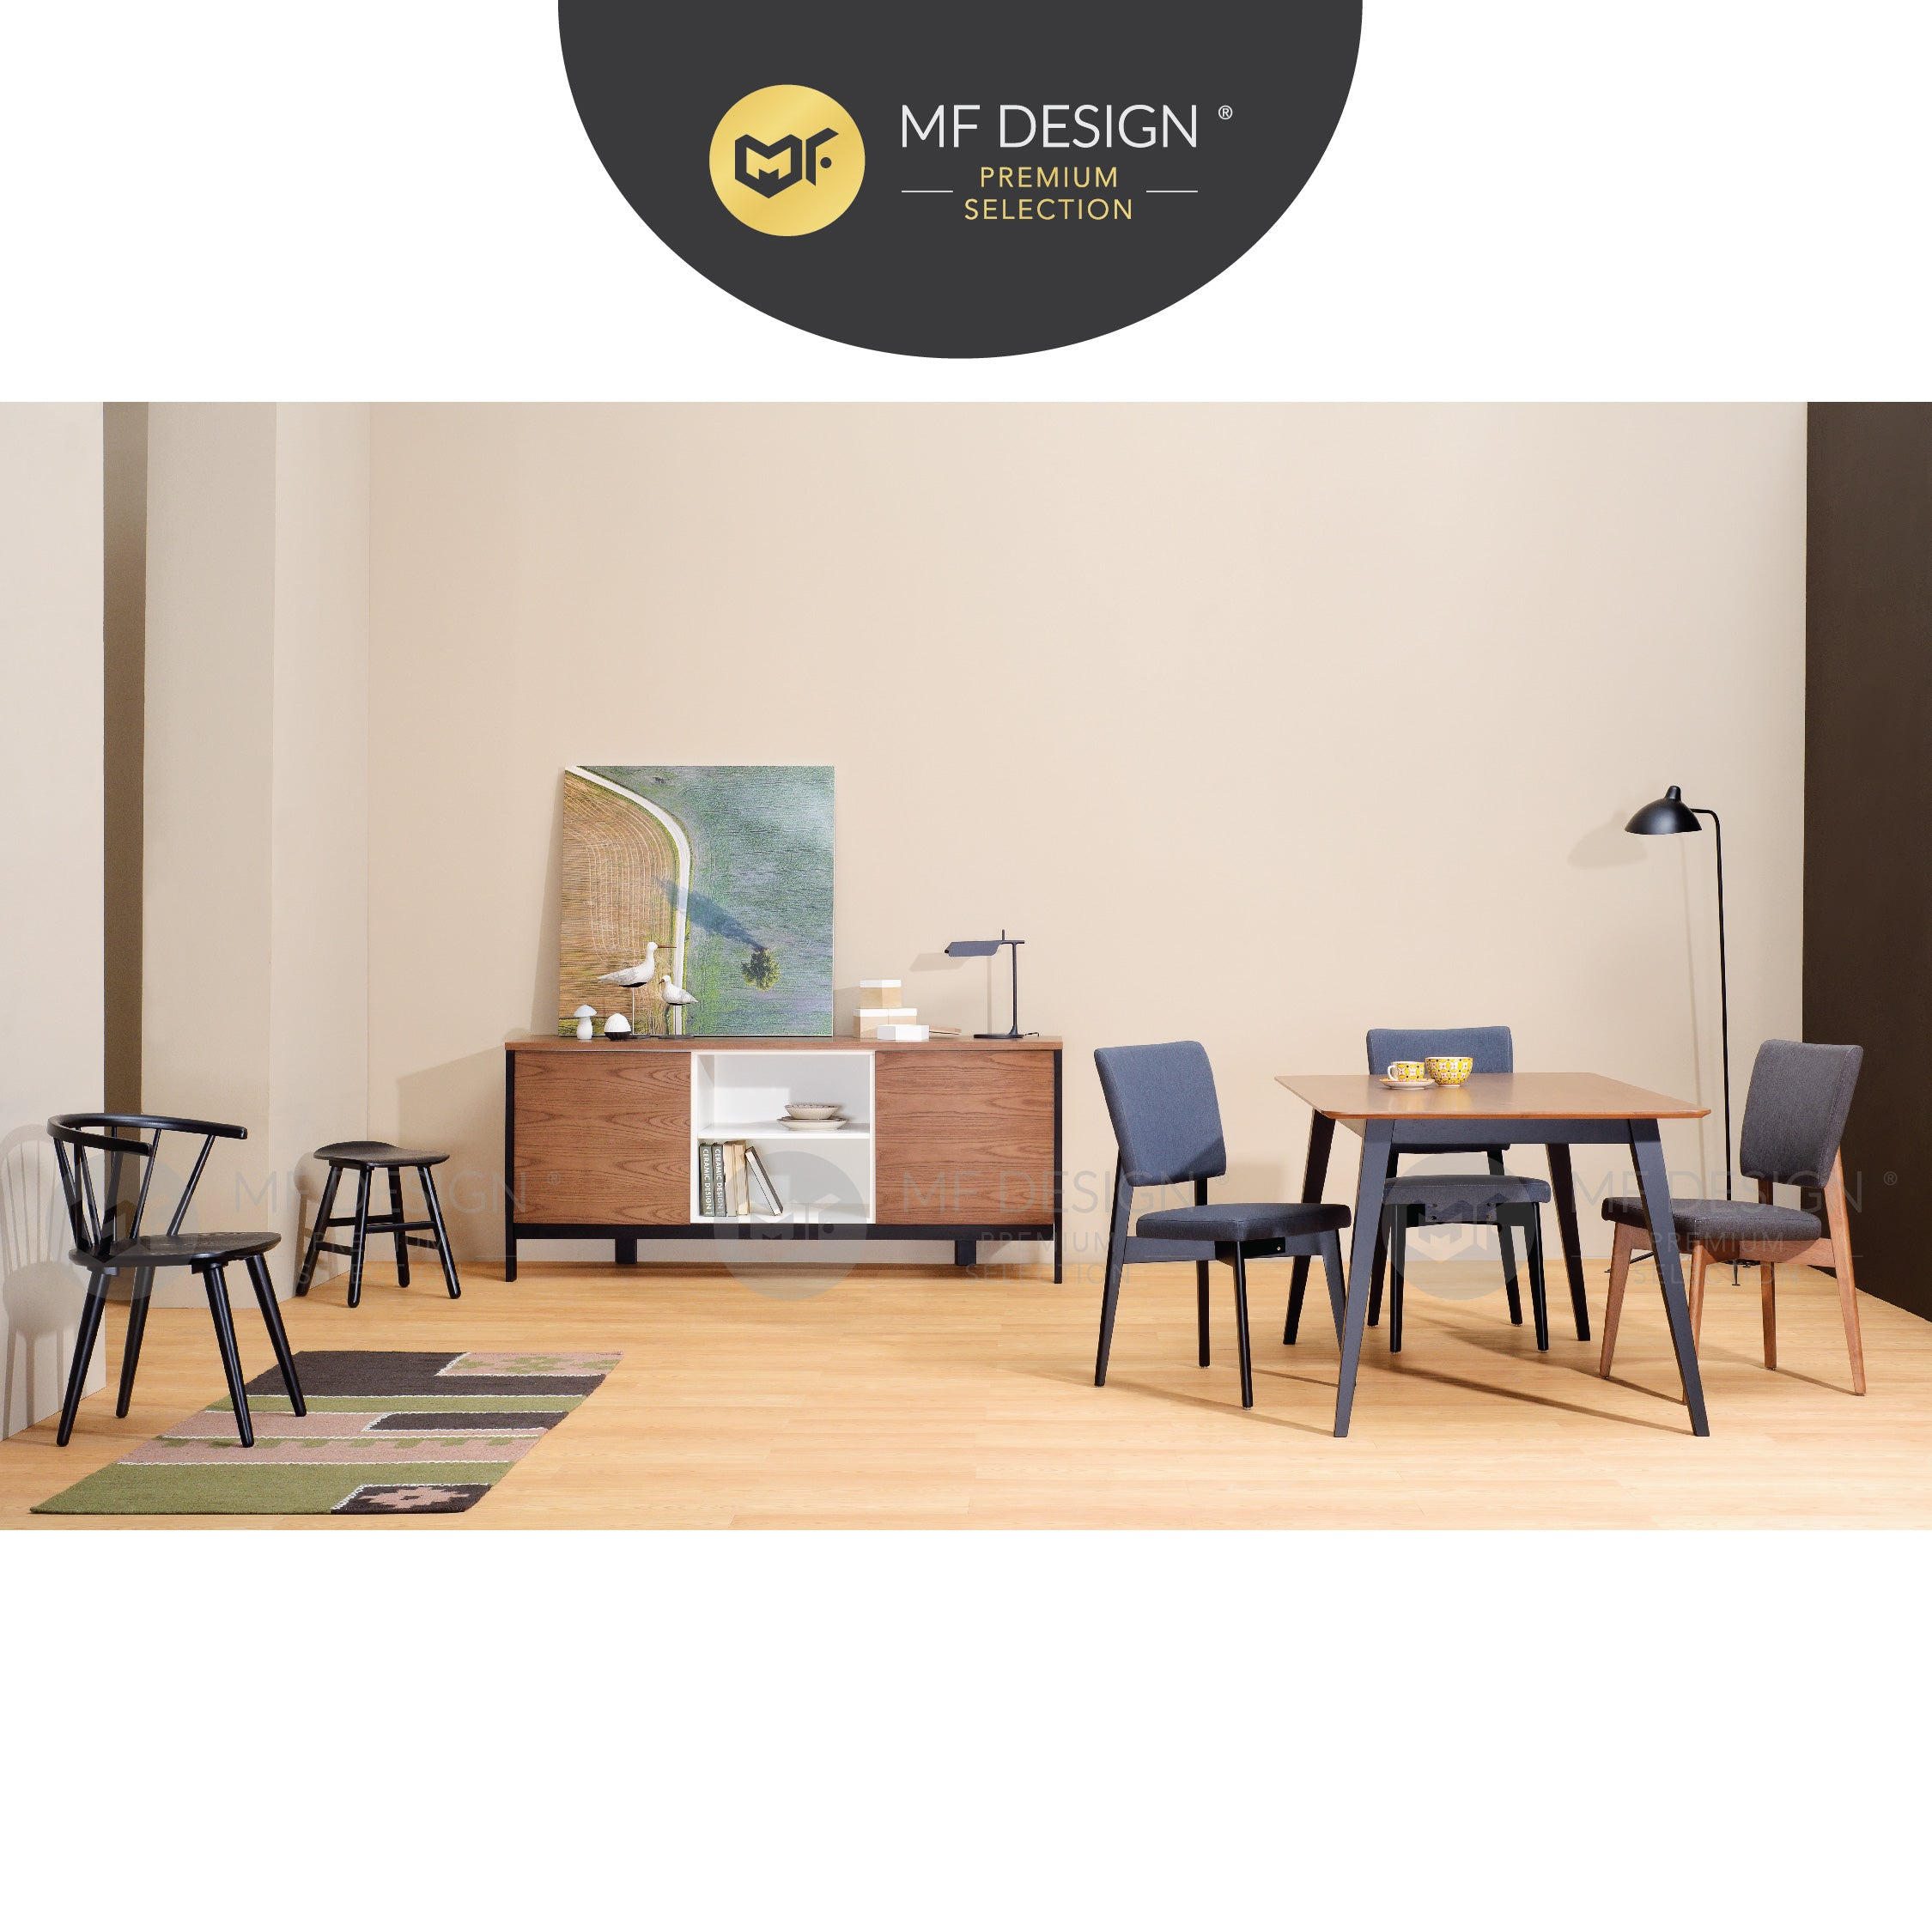 MFD Pemium Gilbert Dining Chair /Wooden Chair / Solid Rubber Wood / Kerusi Makan Kayu Getah / Living Room / Scandinavian